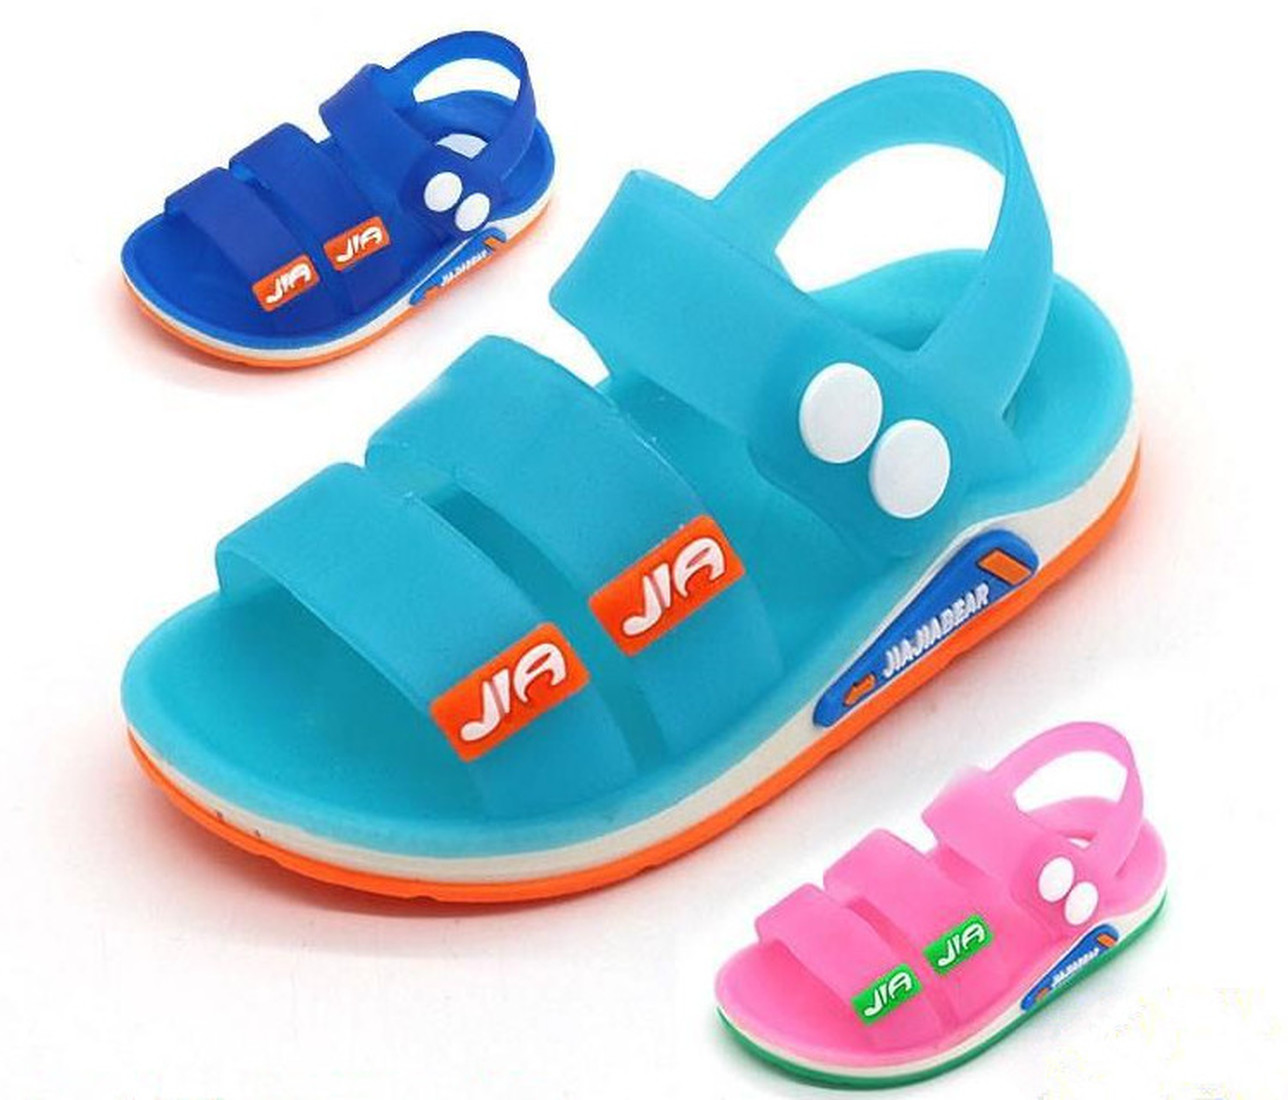 2019 Summer Casual Kids Sandals Toddler Boys Beach Shoes Soft Breathable Cool Comfortable Children Jelly Girls Sandals Slippers